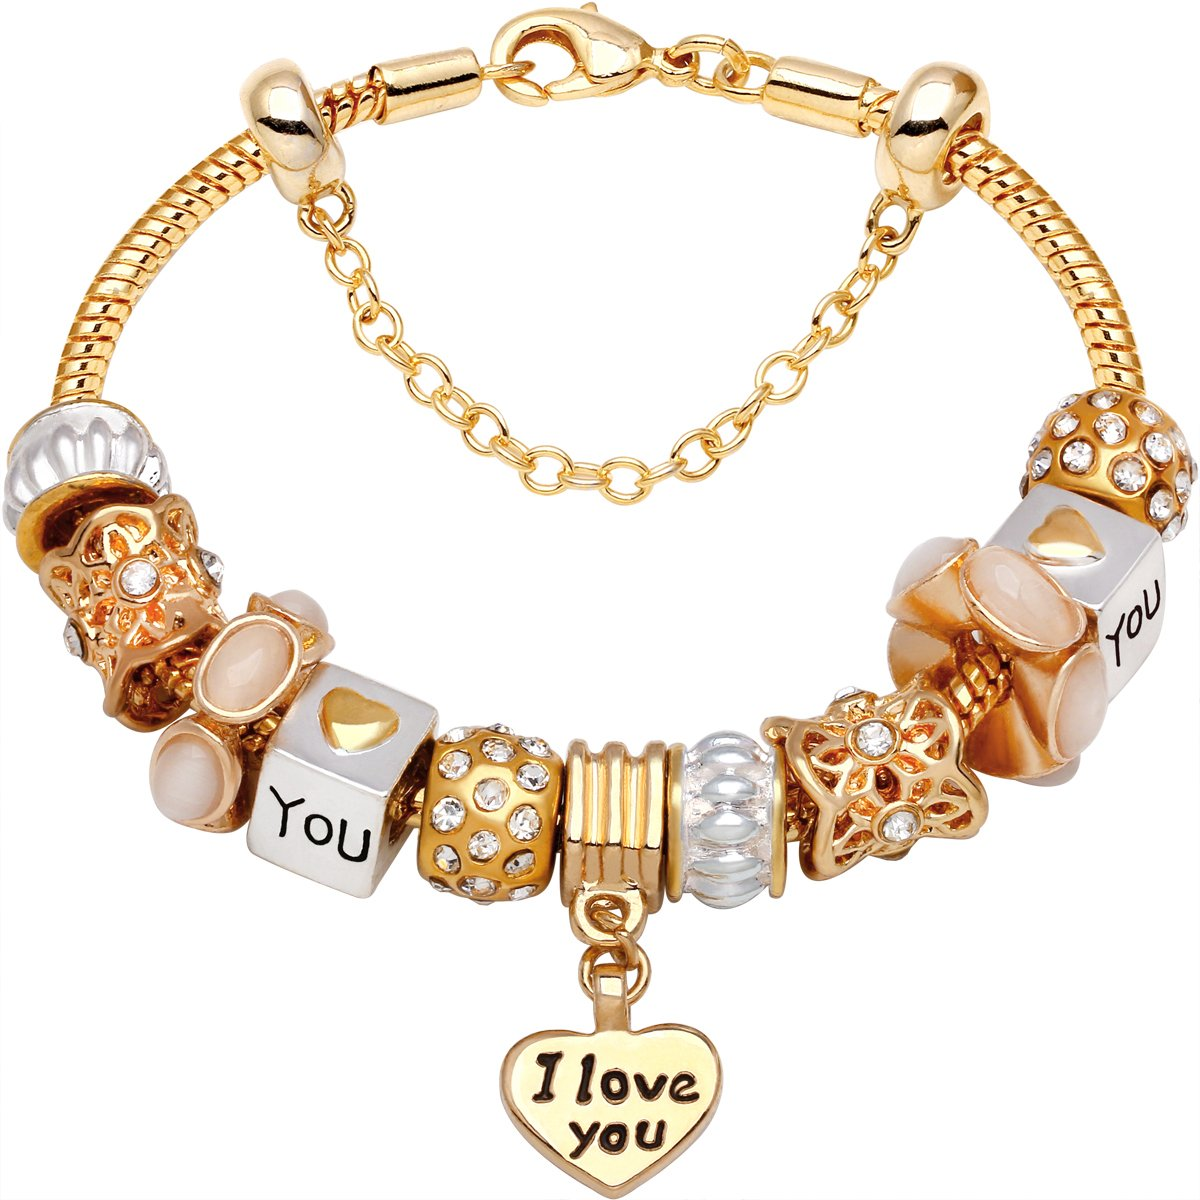 I Love You Charm With Lobster Claw Clasp Charms for Bracelets and Necklaces